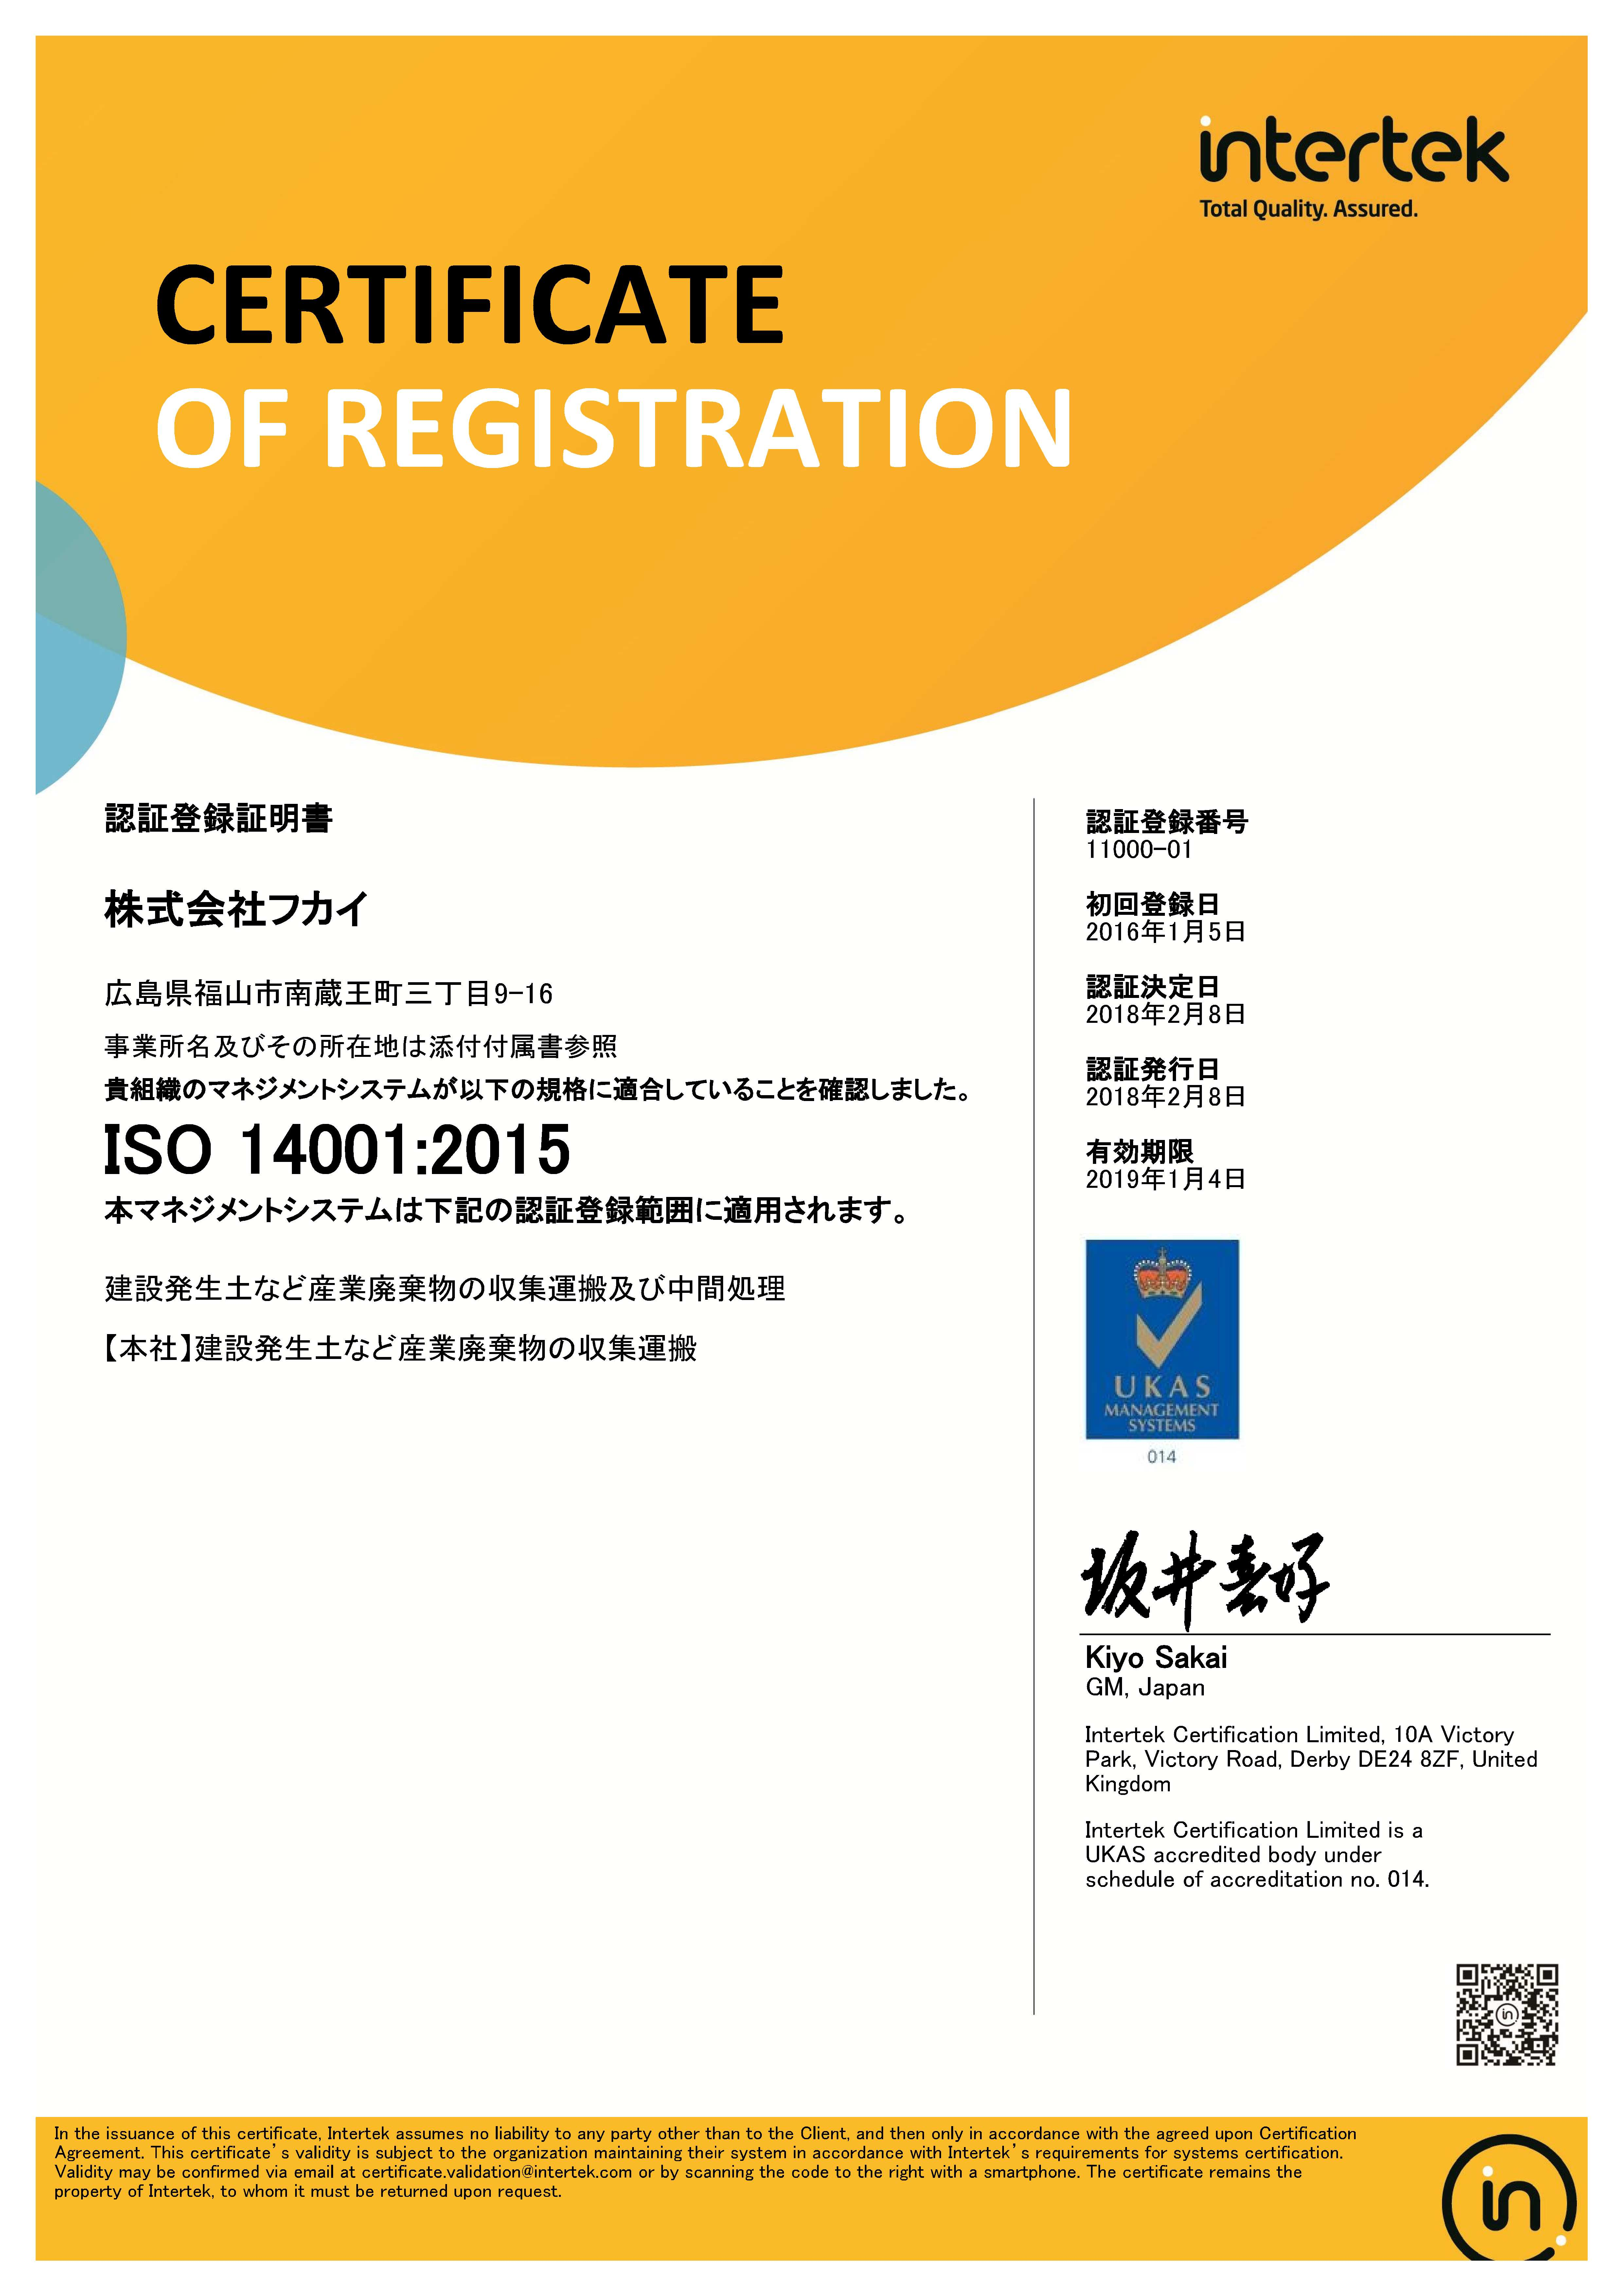 ISO14001:2015認証登録証明書